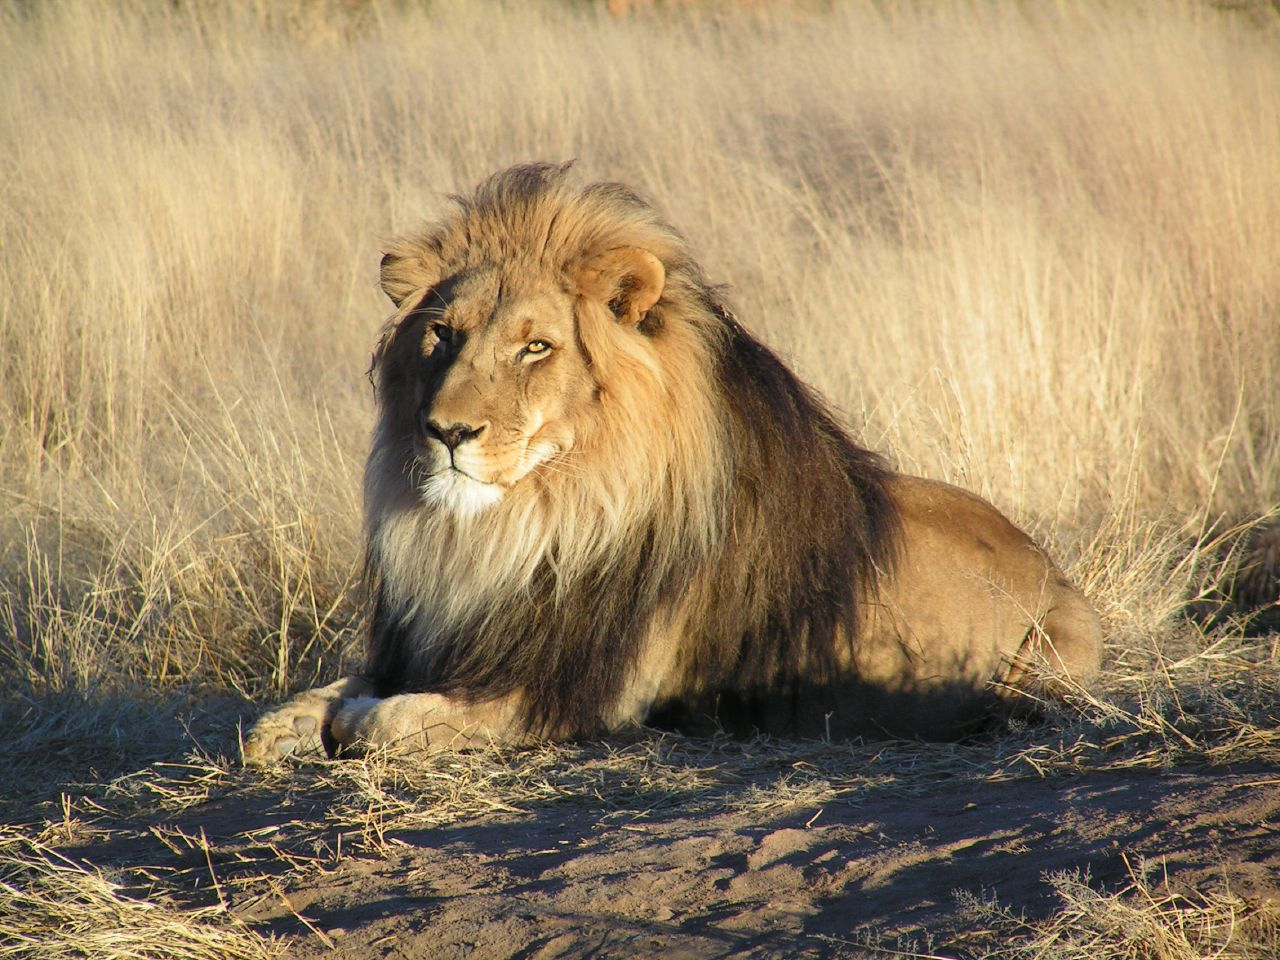 http://bundamahes.files.wordpress.com/2011/04/lion-waiting-in-nambia.jpg